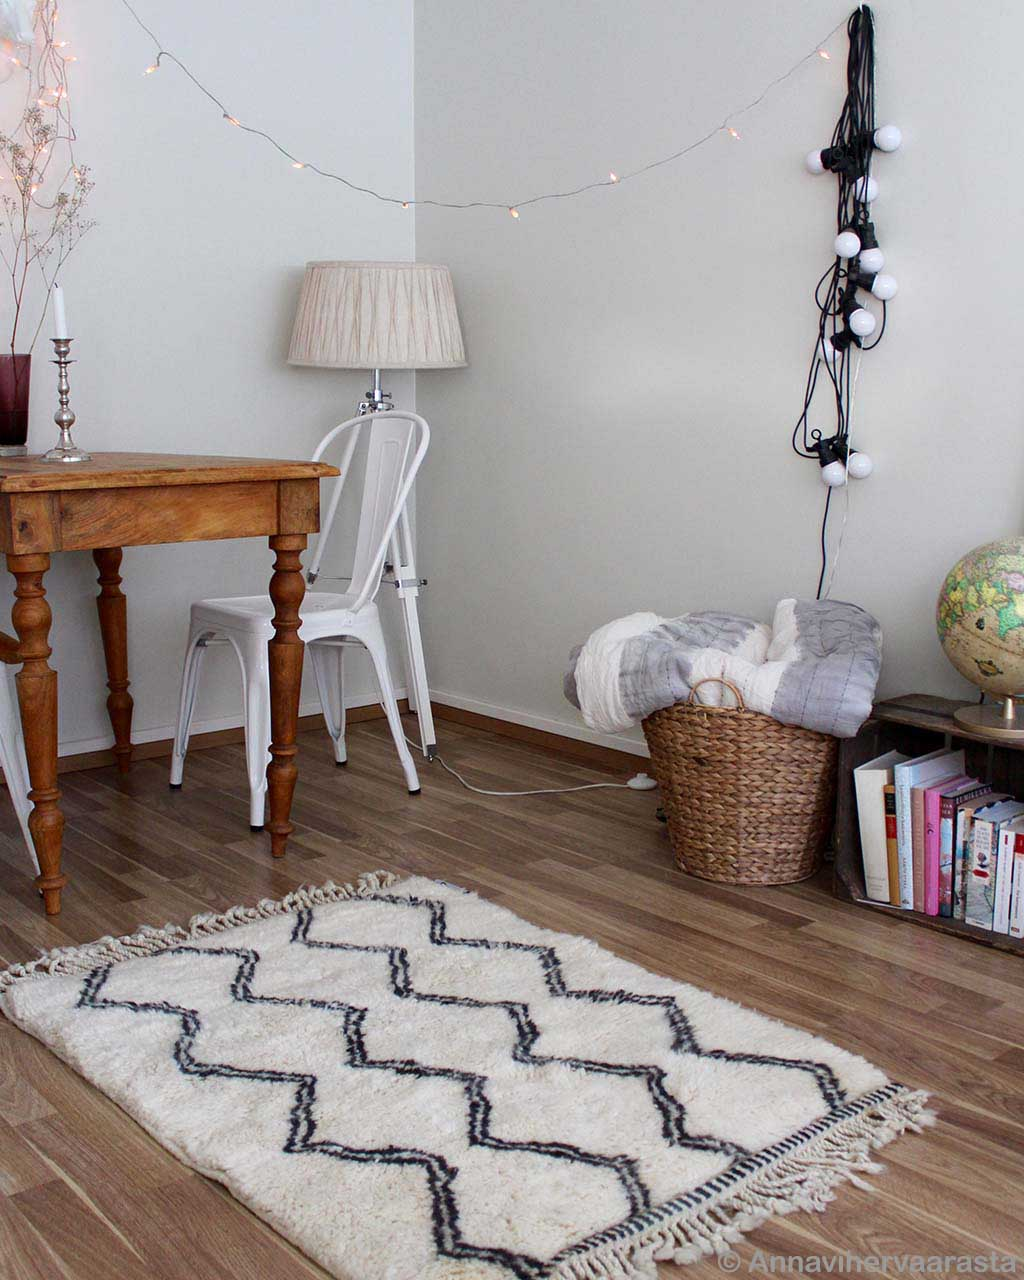 woolen table basket and books berber rugs